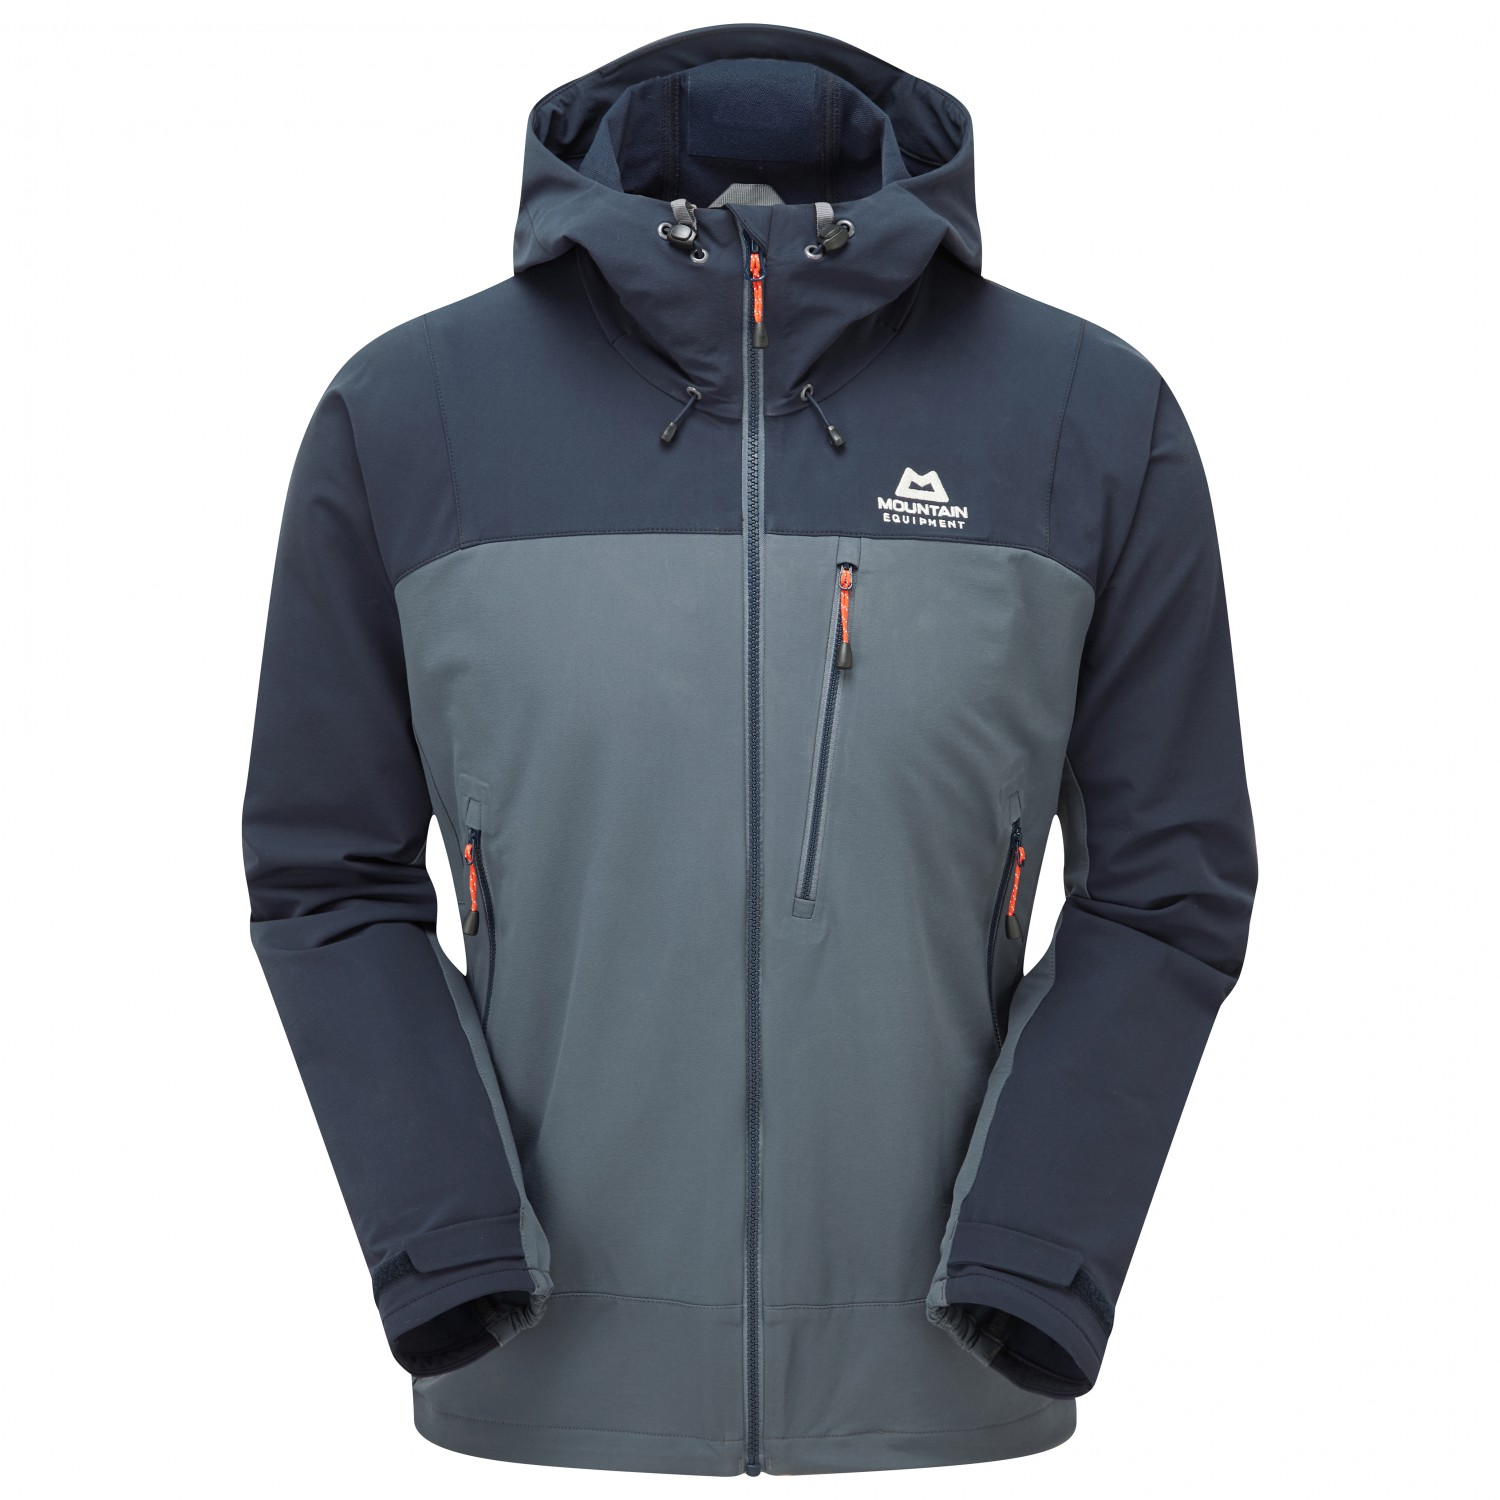 8ec4acd16583 Mountain Equipment Mission Jacket - Giacca softshell Uomo | Porto ...